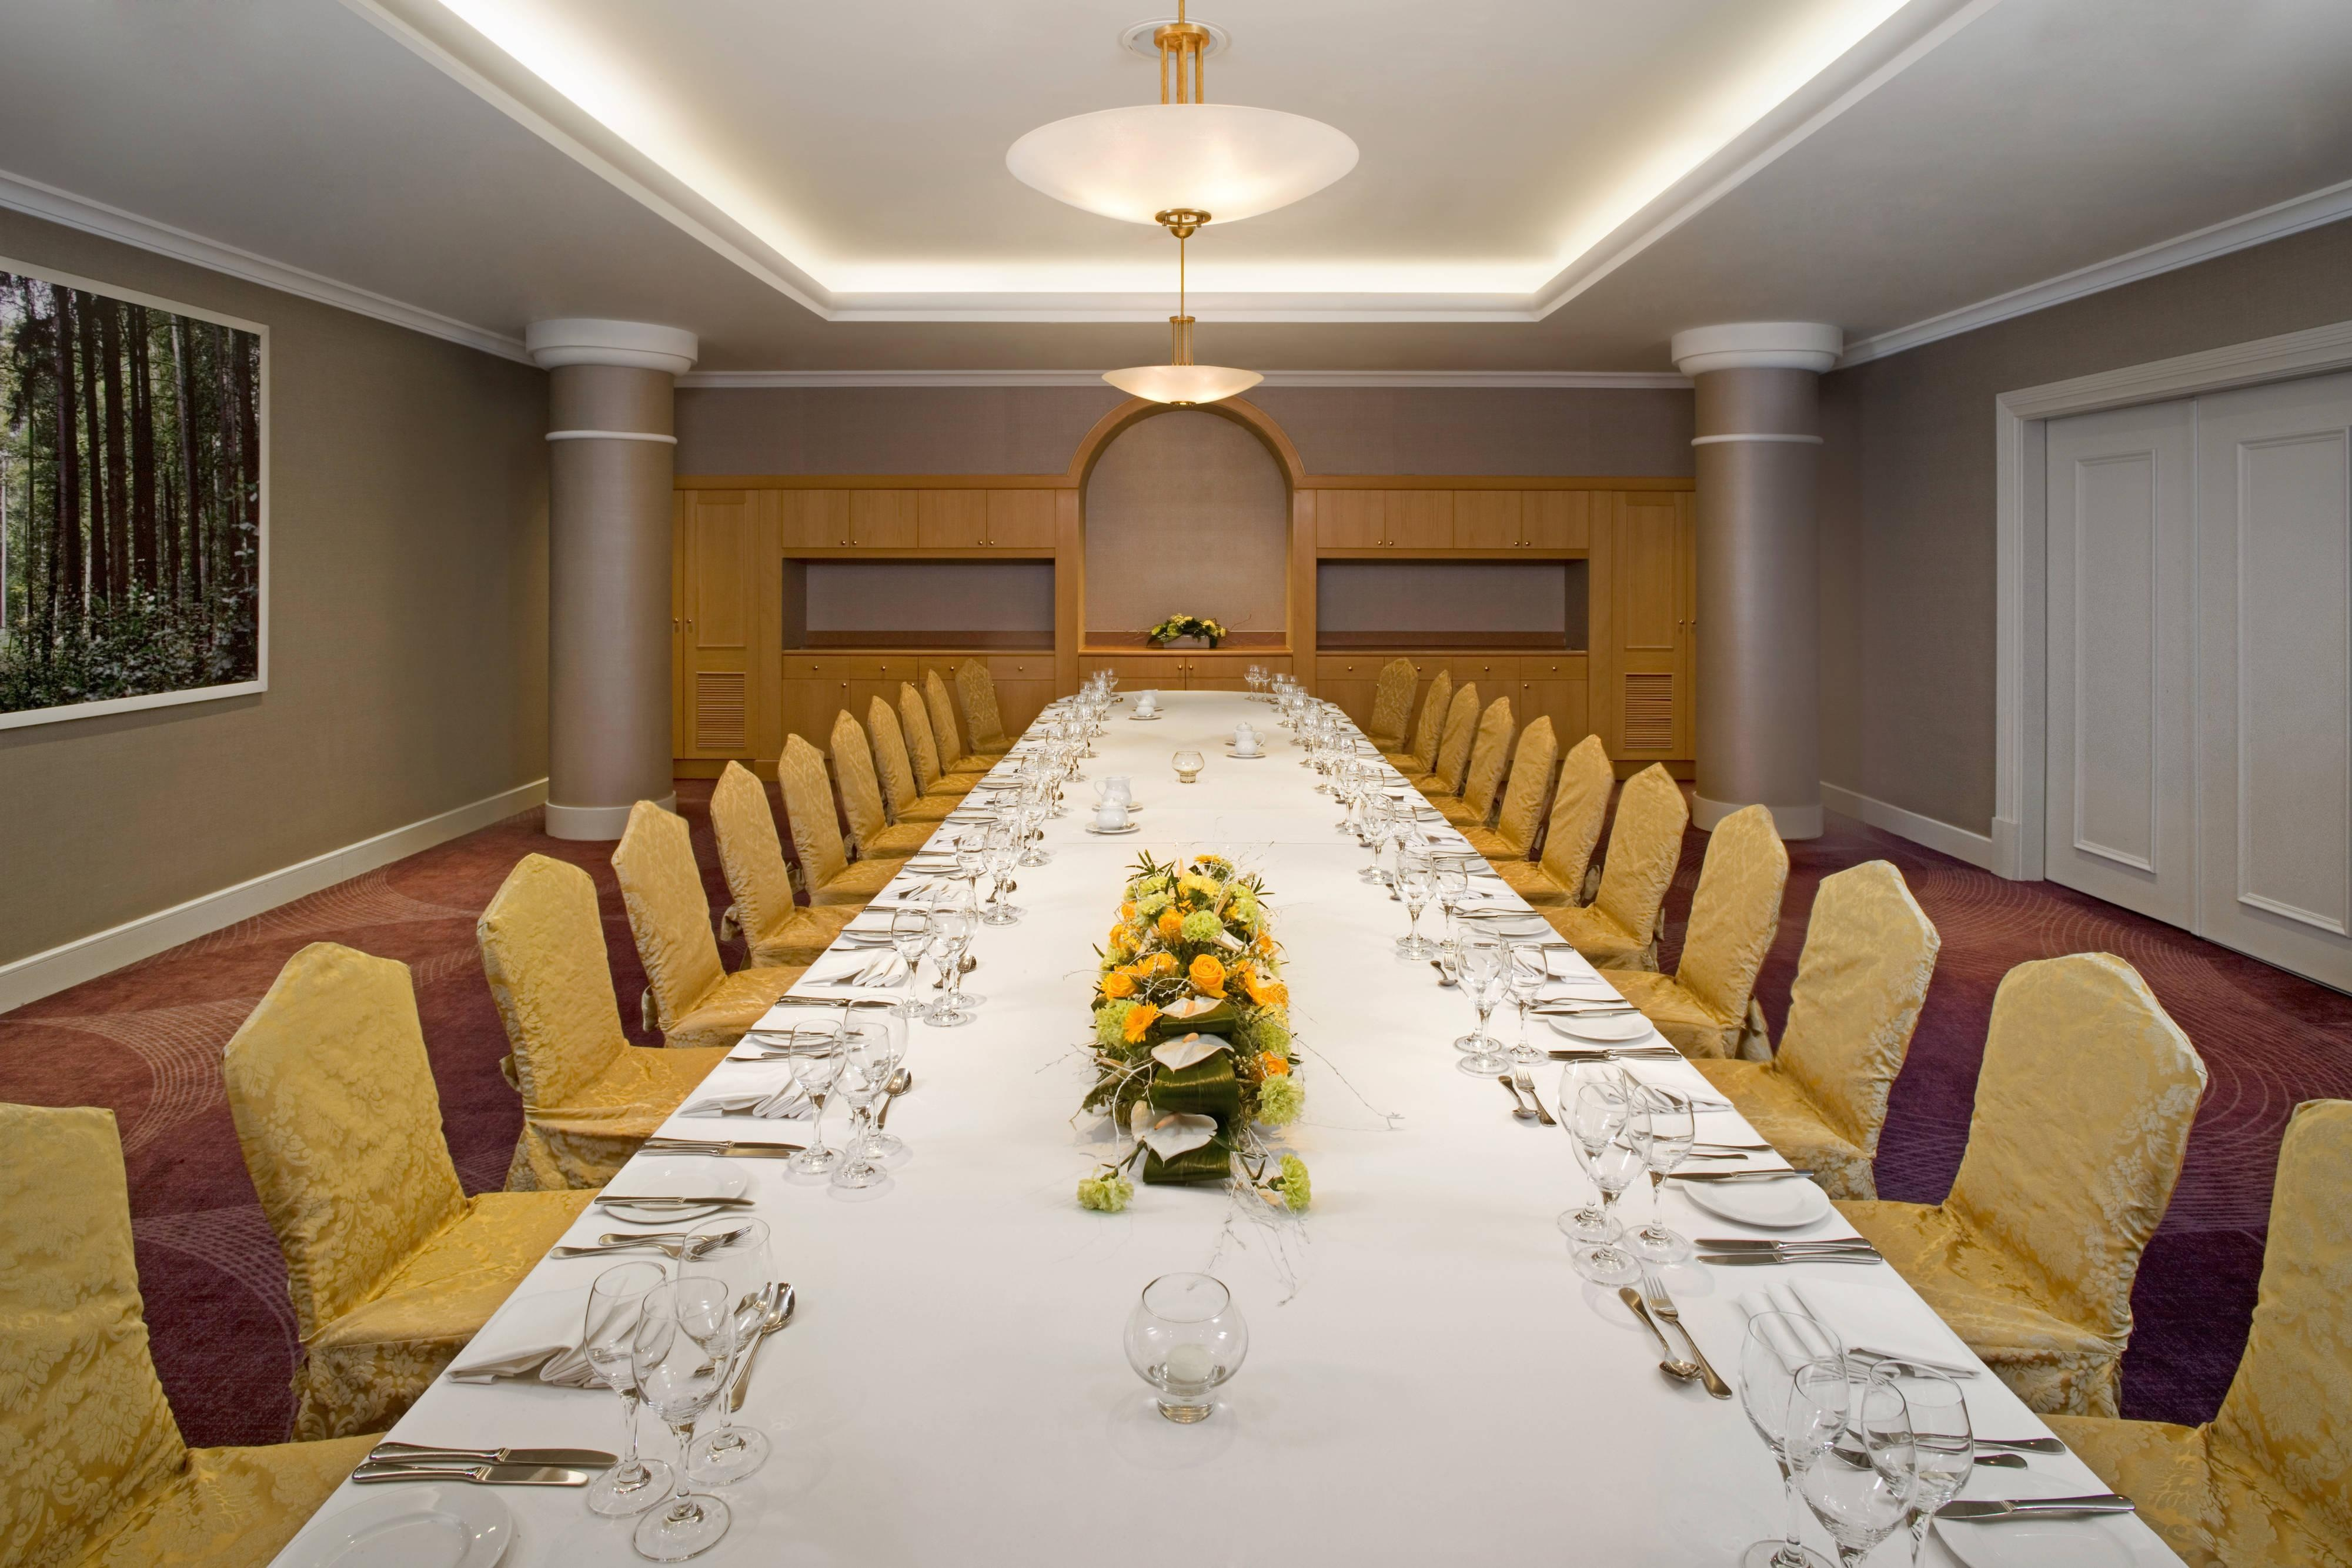 Warsaw Conference Room - Oval Dinner